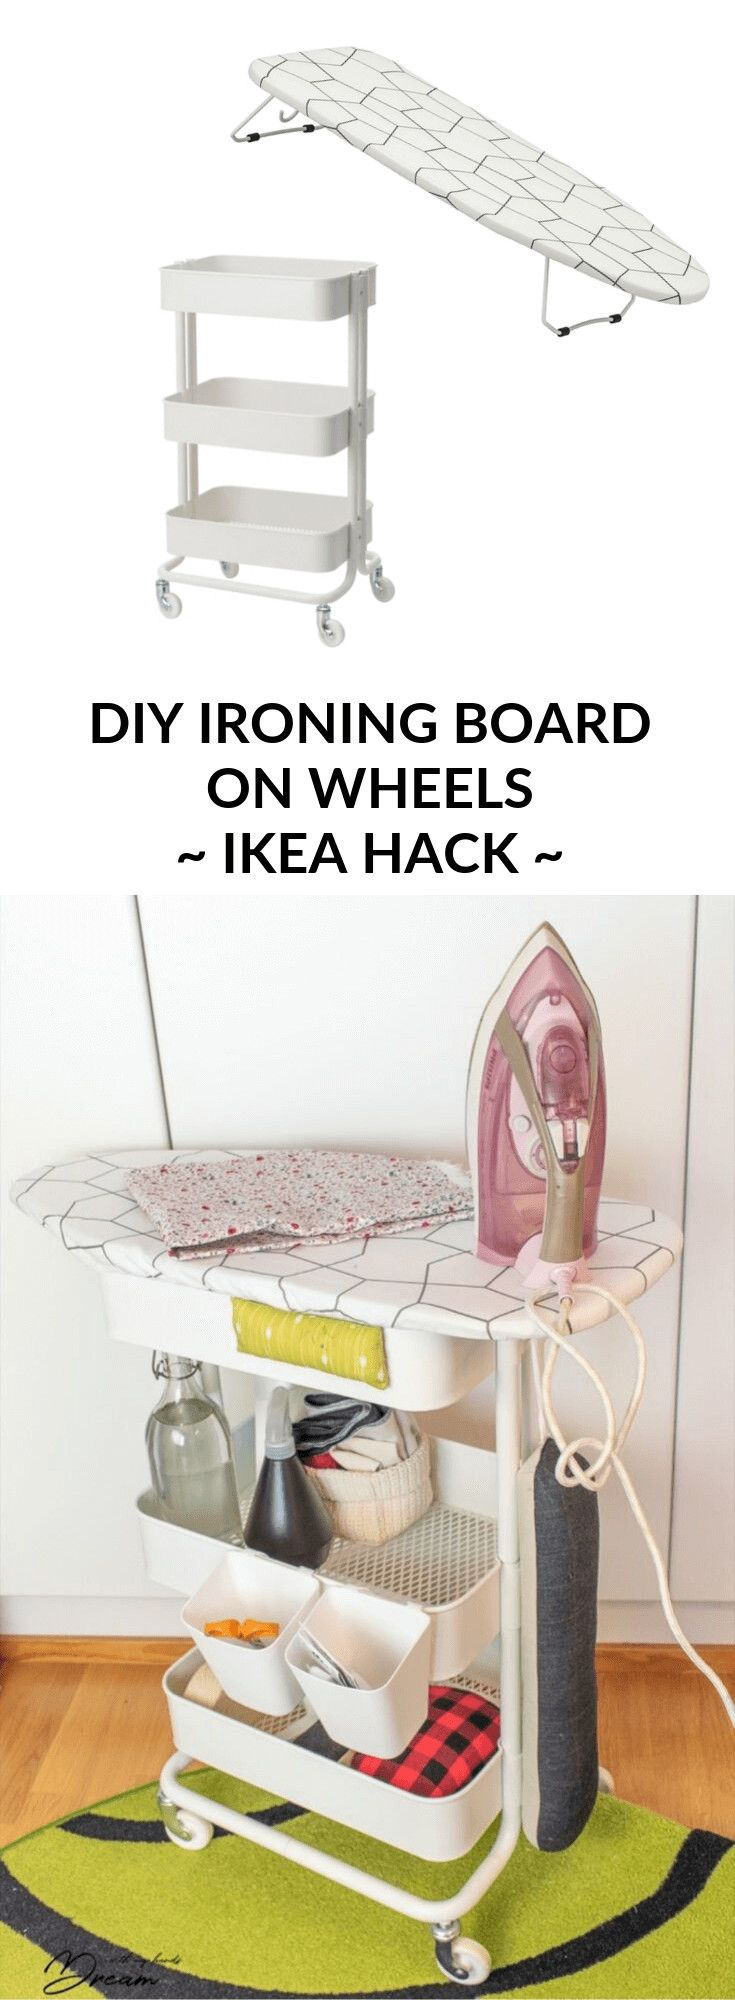 Ironing board on wheels: Your sewing room needs this